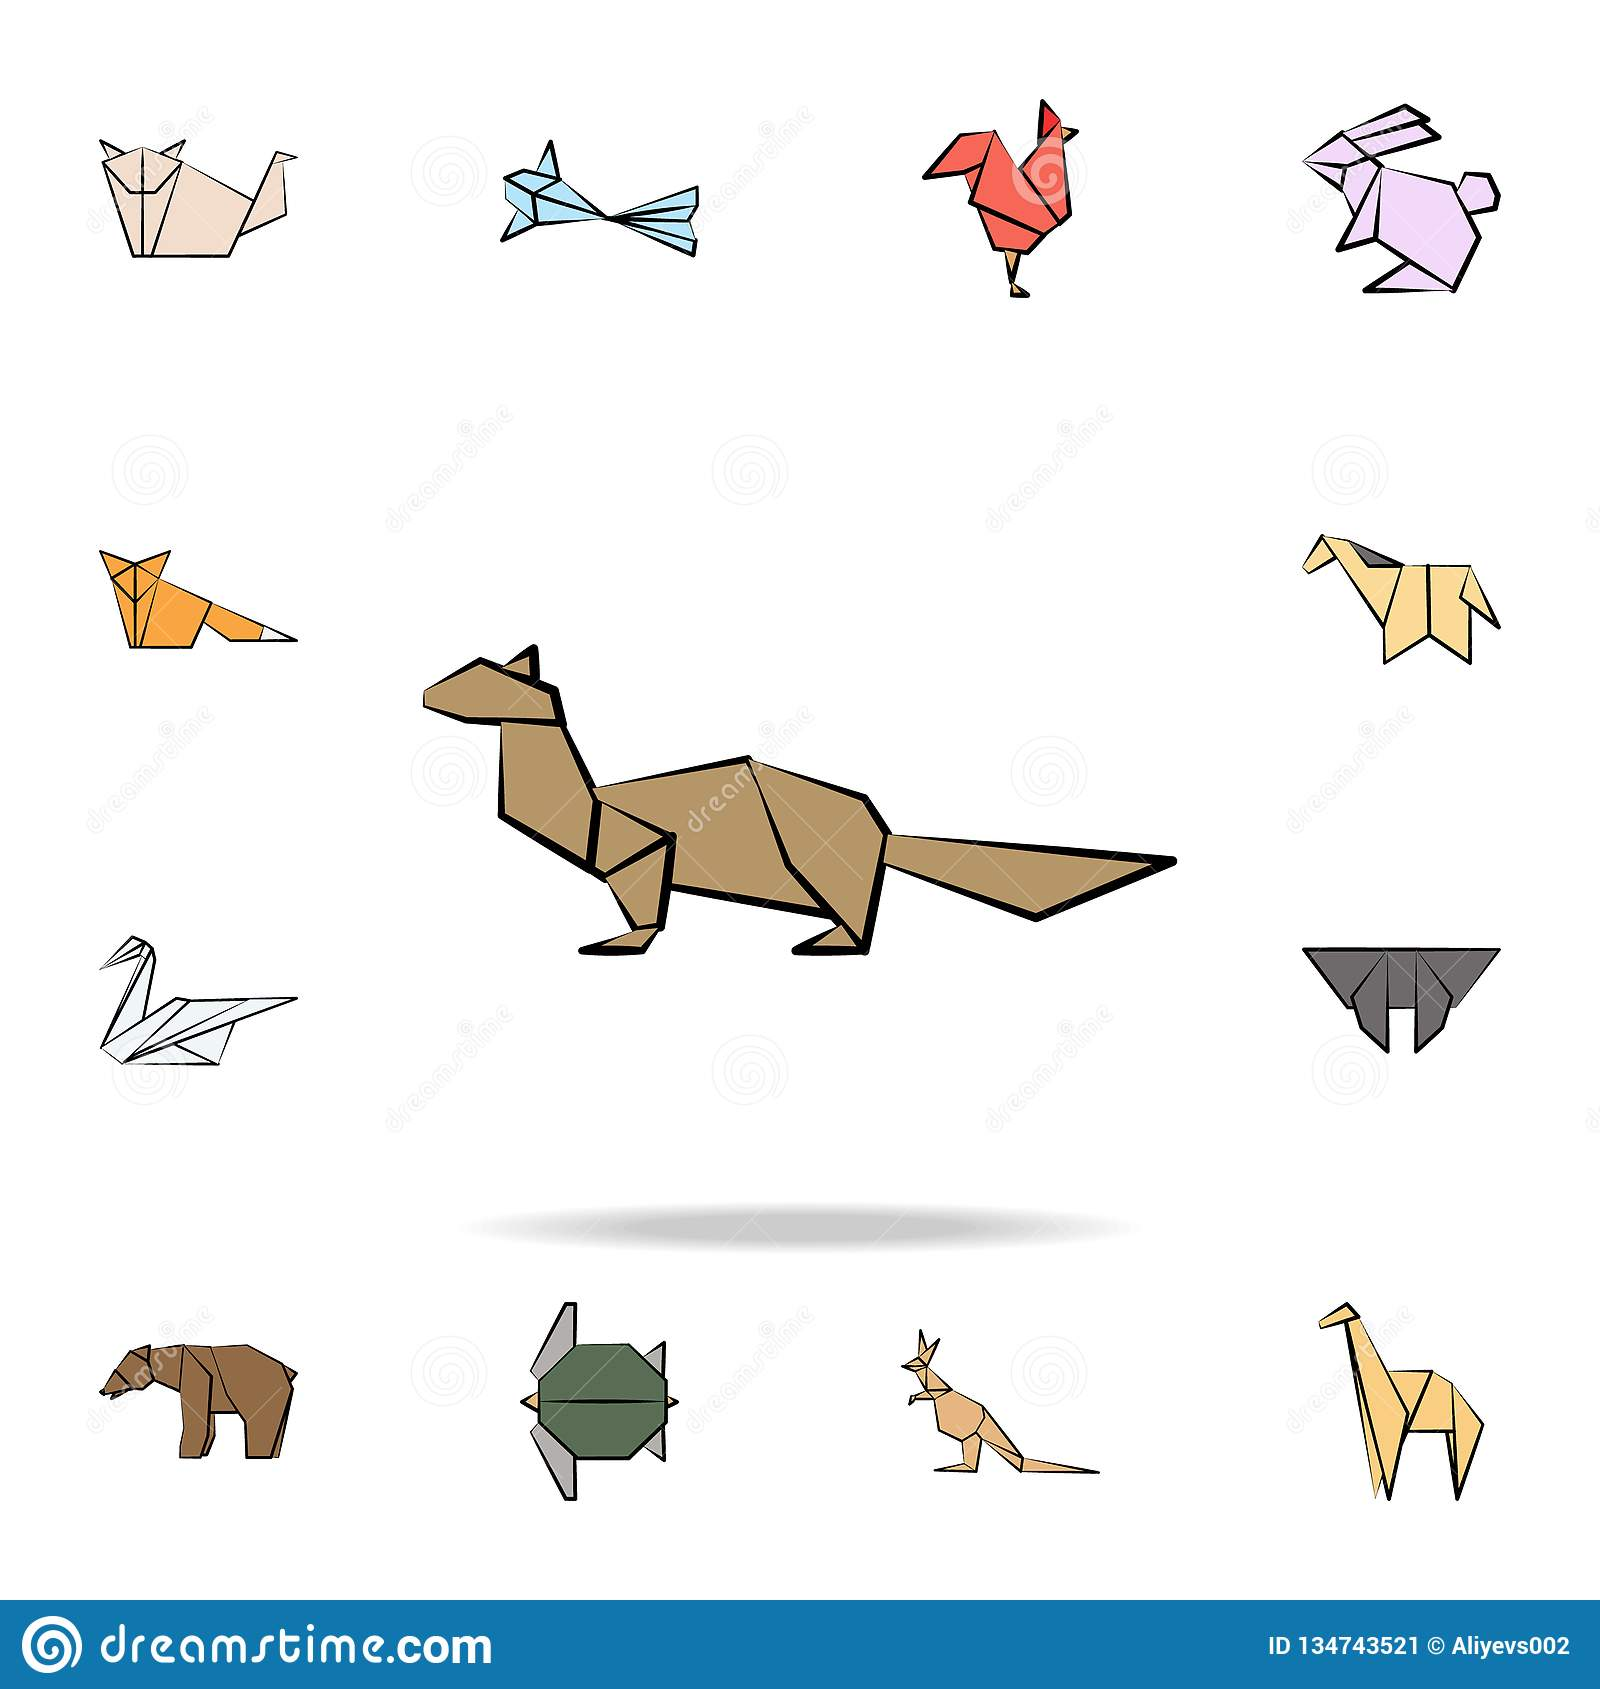 sable colored origami icon. Detailed set of origami animal in hand drawn style icons. Premium graphic design. One of the